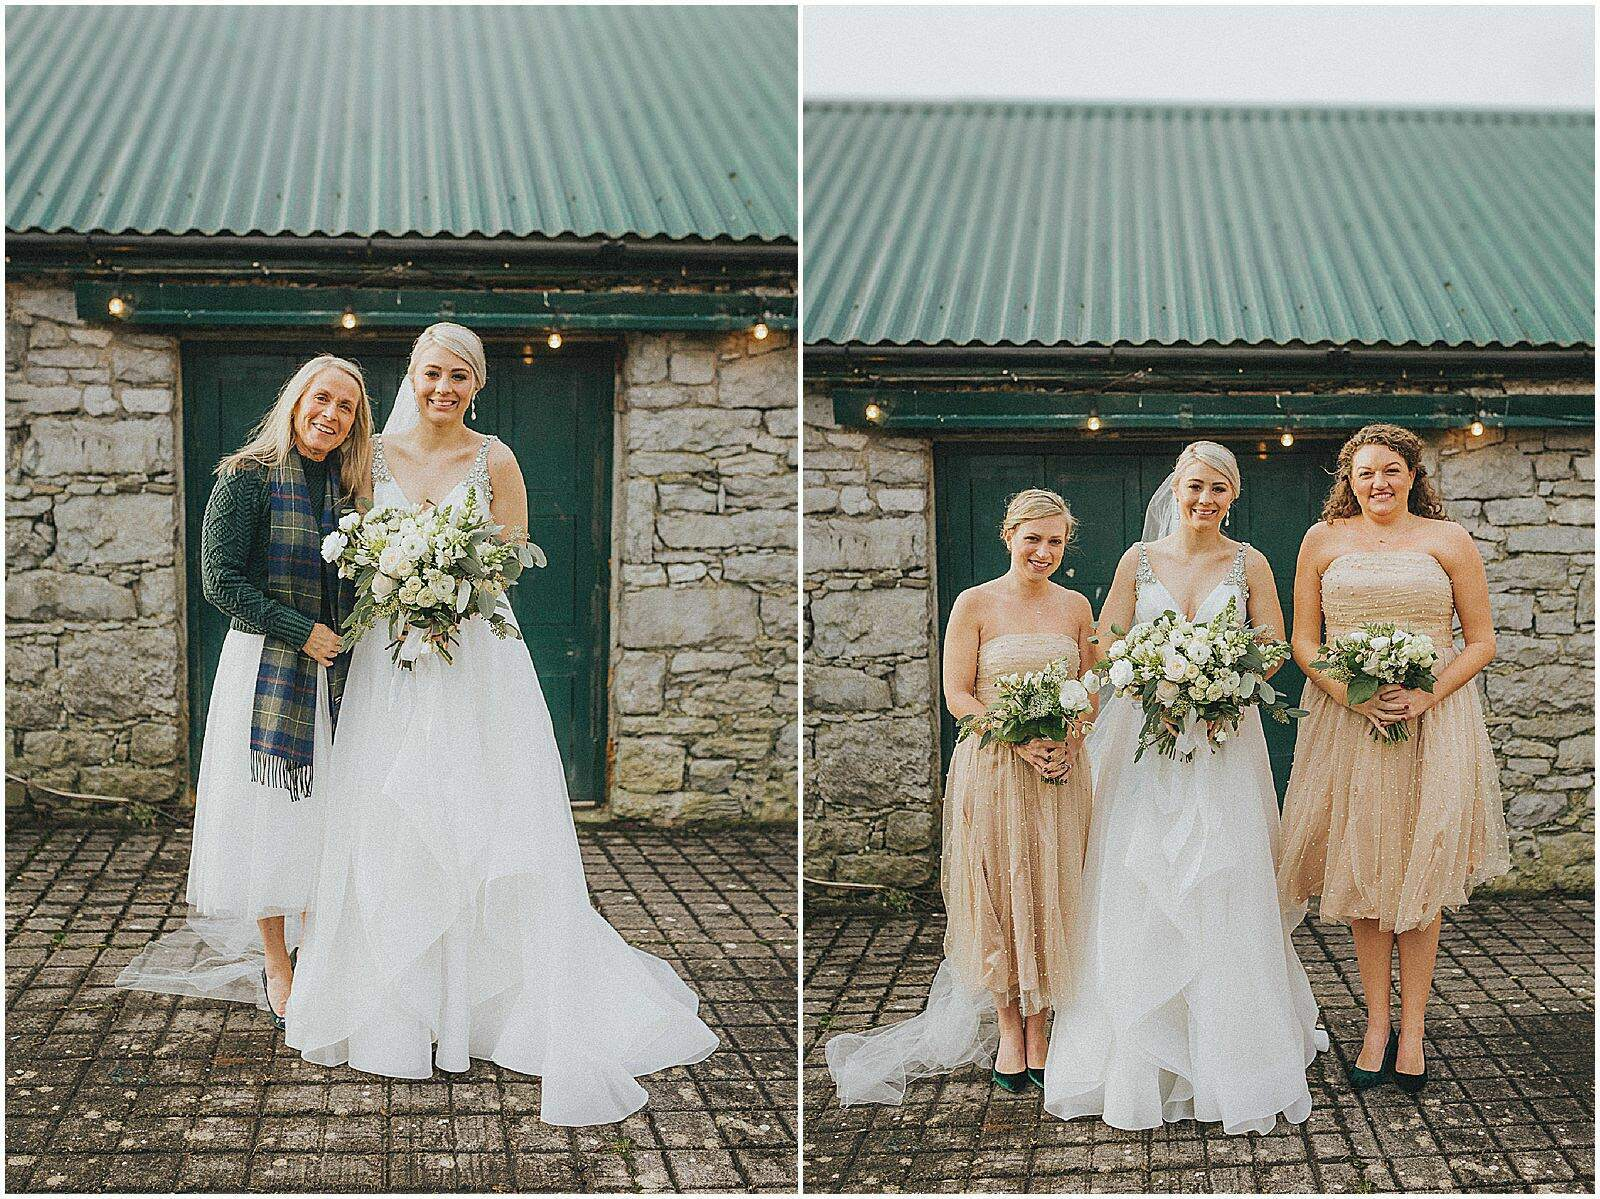 Johnny Corcoran Lifestyle Relaxed Unposed documentary Natural Wedding Portrait Photography Dublin Ireland 3155 - Fun and Relaxed wedding and elopement photography in Ireland, perfect for adventurous and outdoorsy couples